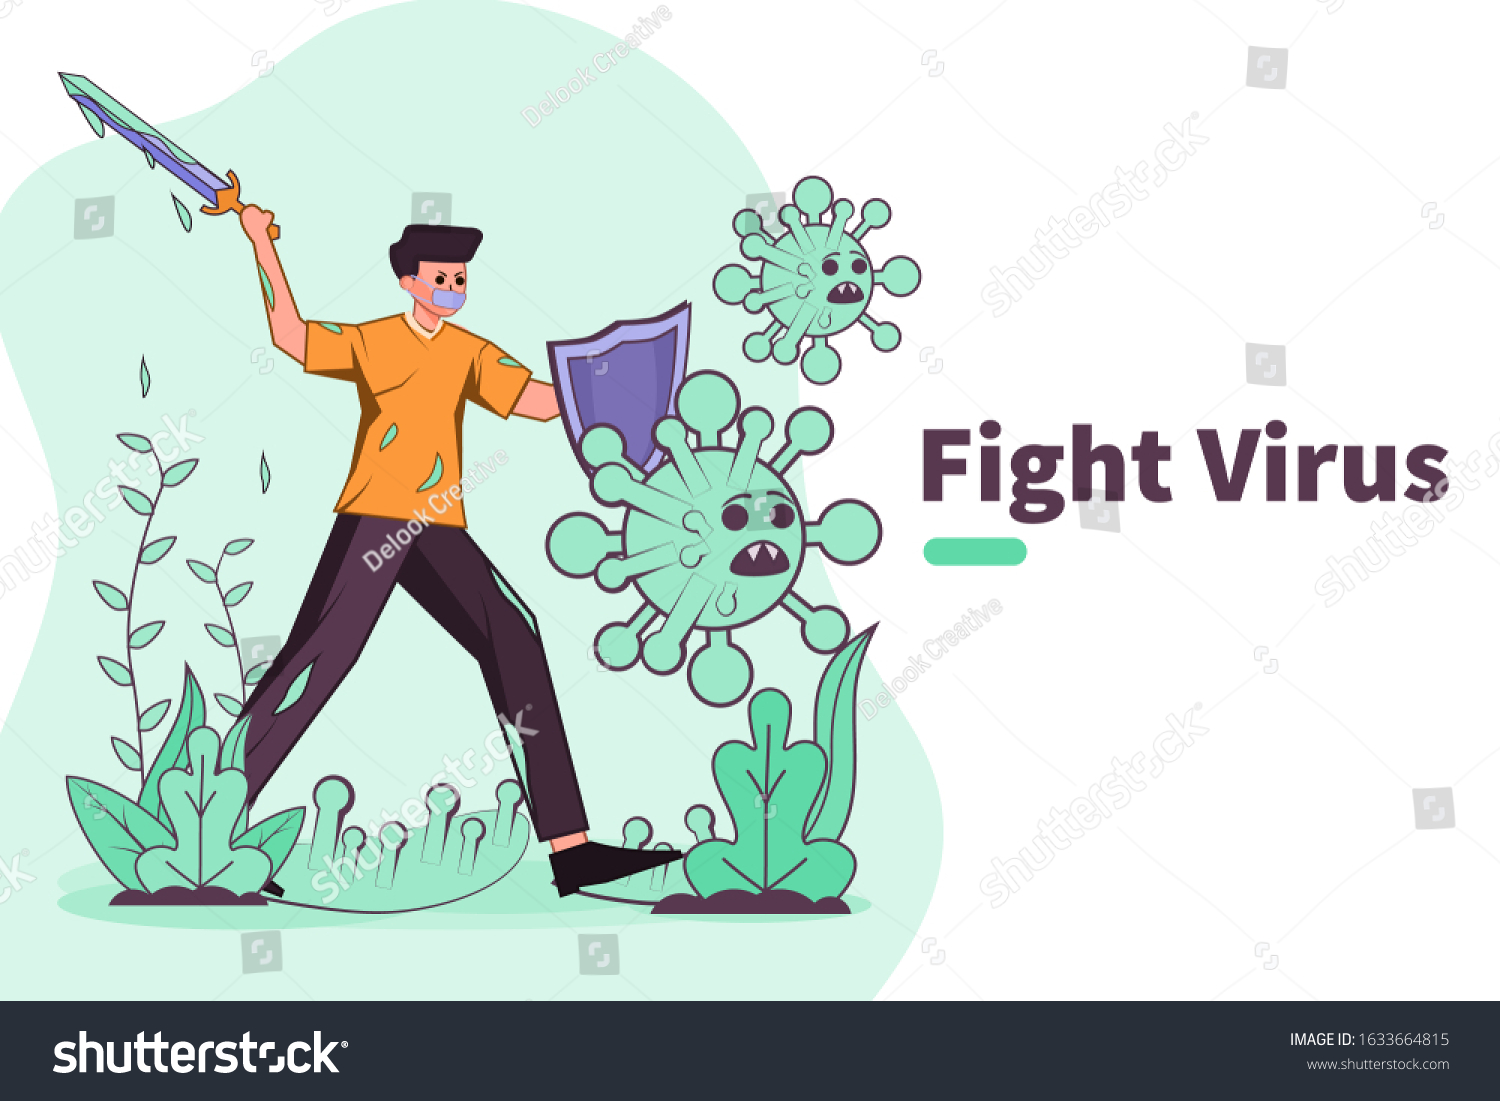 Vector Illustration Fight Against Covid19 Virus Stock Vector Royalty Free 1633664815